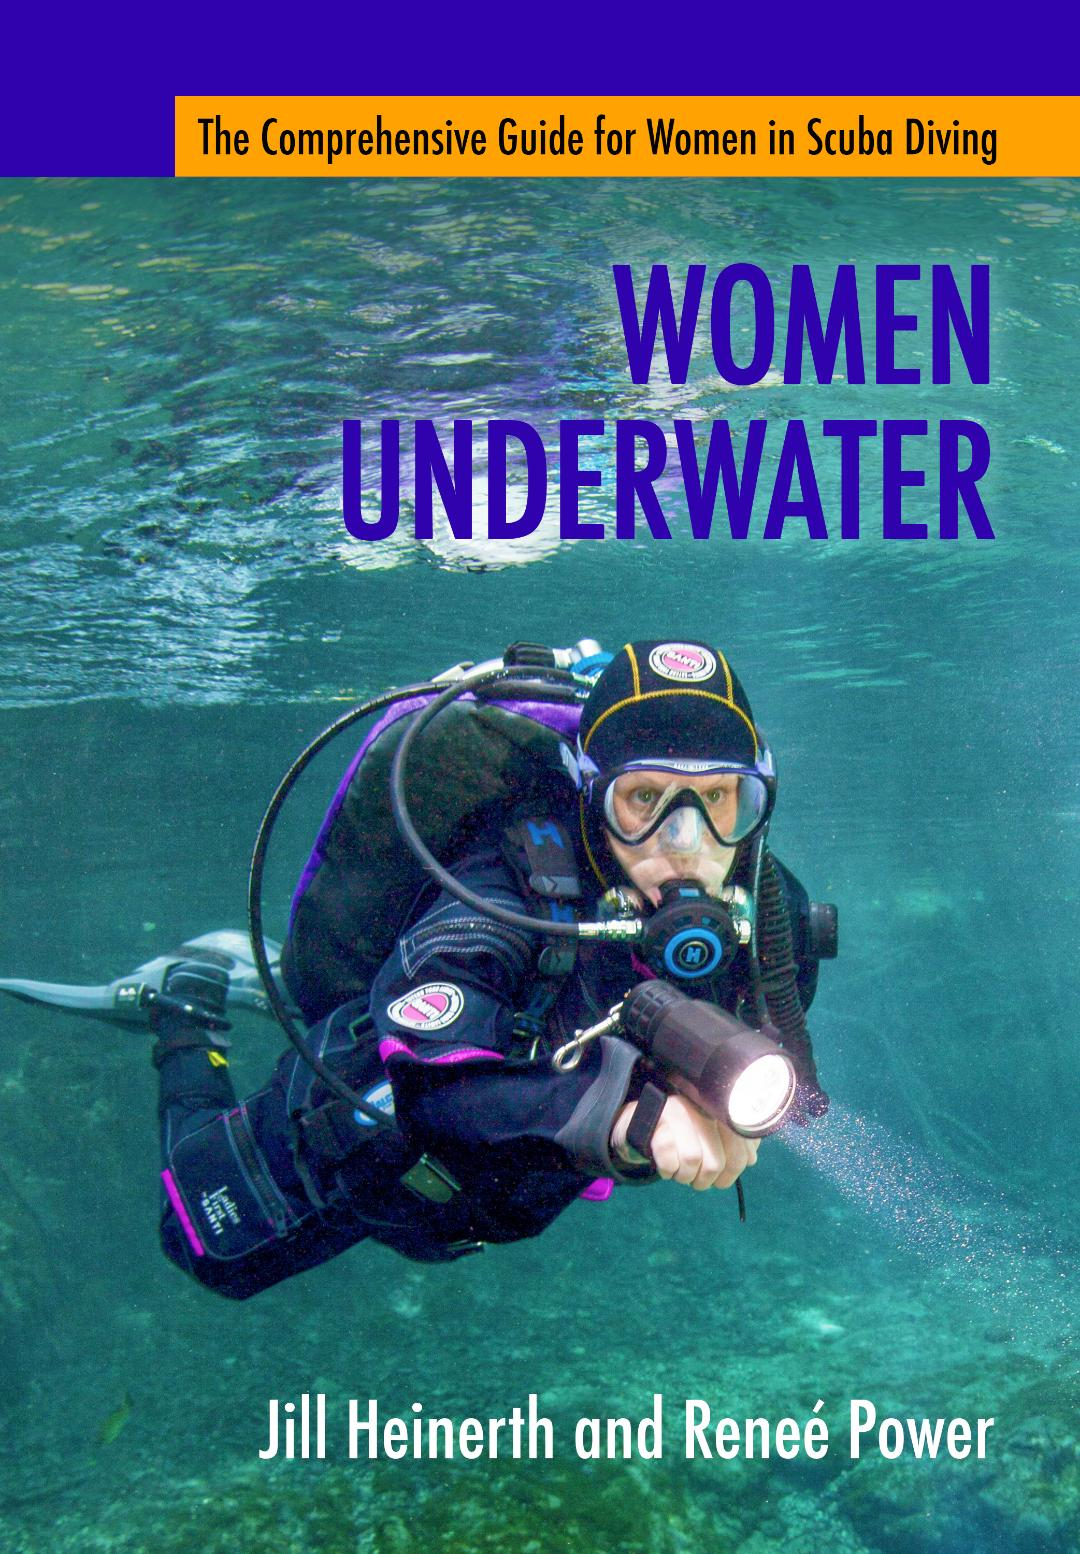 Women Underwater: The Comprehensive Guide for Women in Scuba Diving (softcover book)